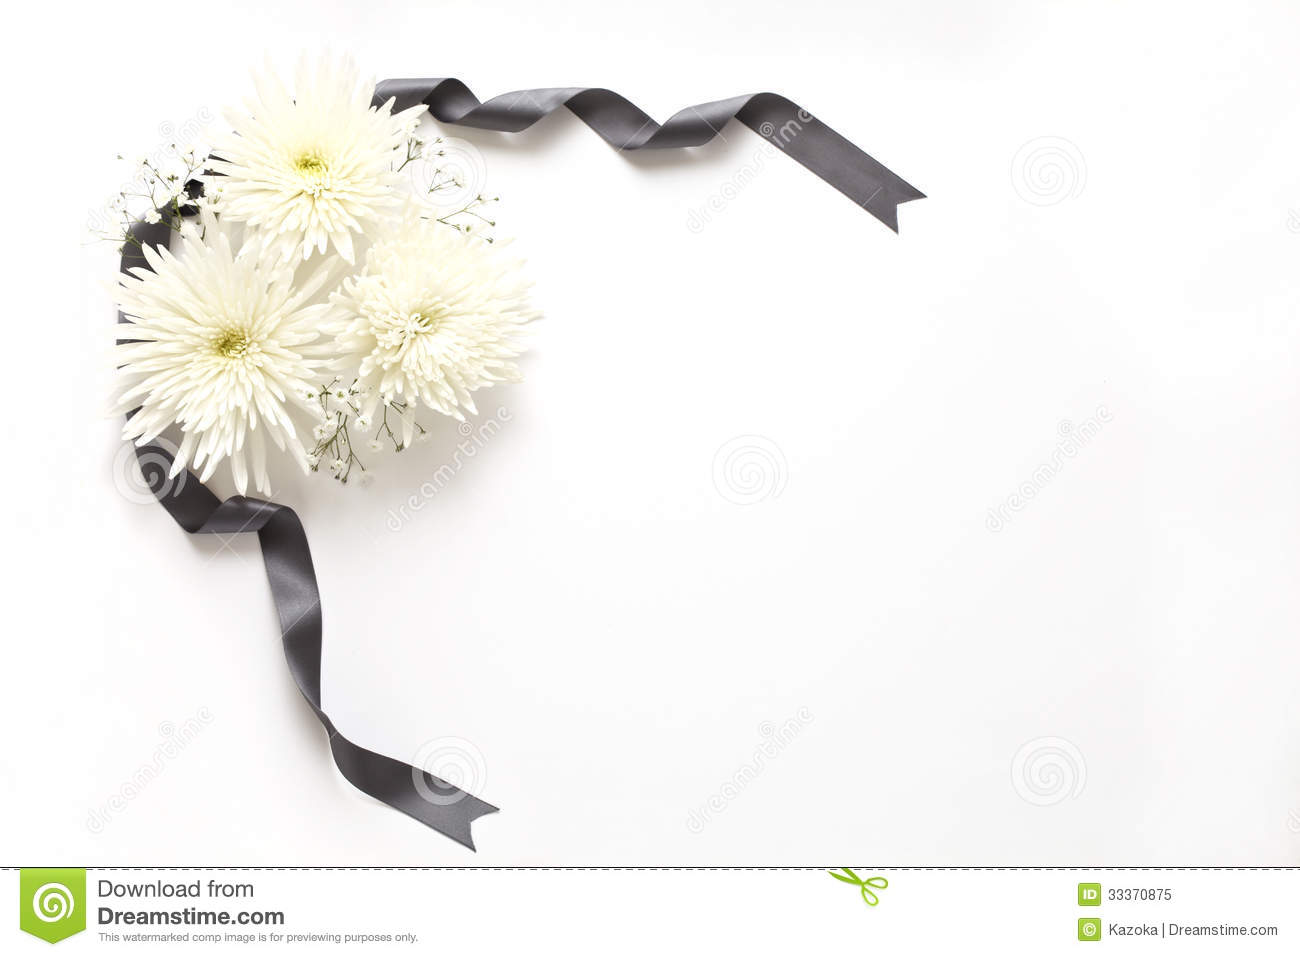 Funeral flowers stock image image of death blossom 33370875 download funeral flowers stock image image of death blossom 33370875 izmirmasajfo